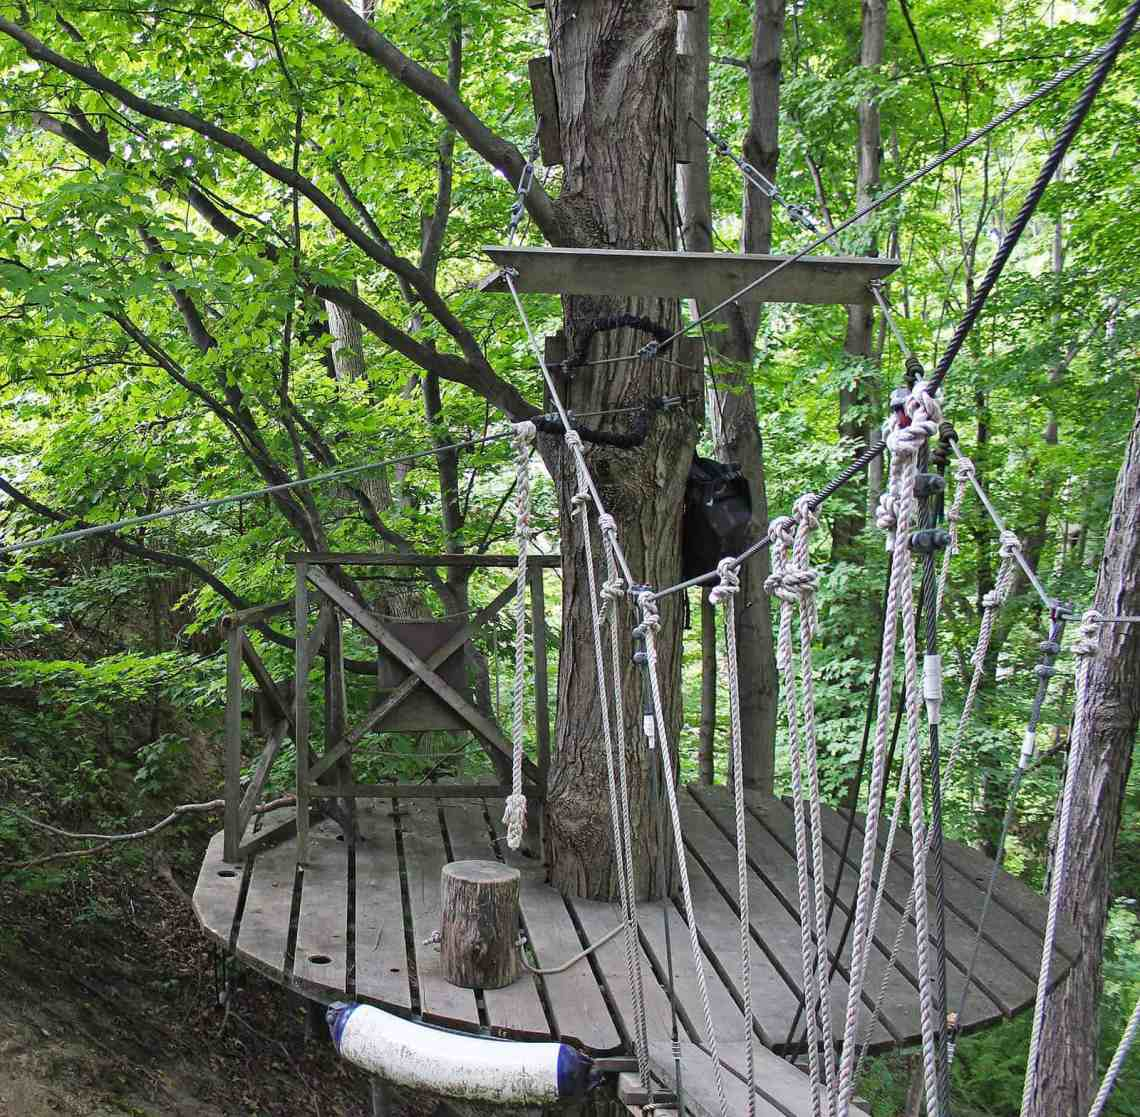 Long Point Zip Line and Canopy Adventure, Ontario, Canada